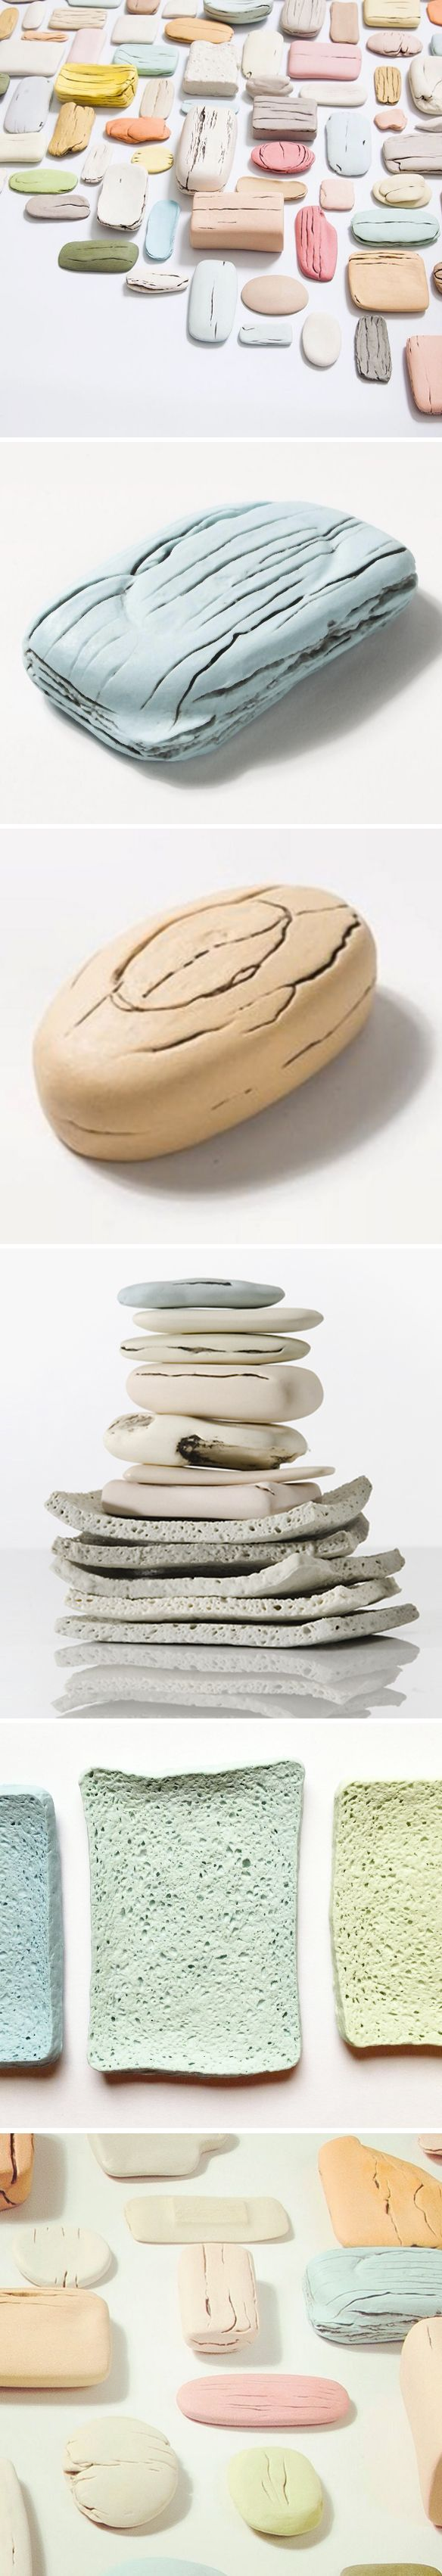 PORCELAIN soap & sponges <3 ceramics by honor freeman